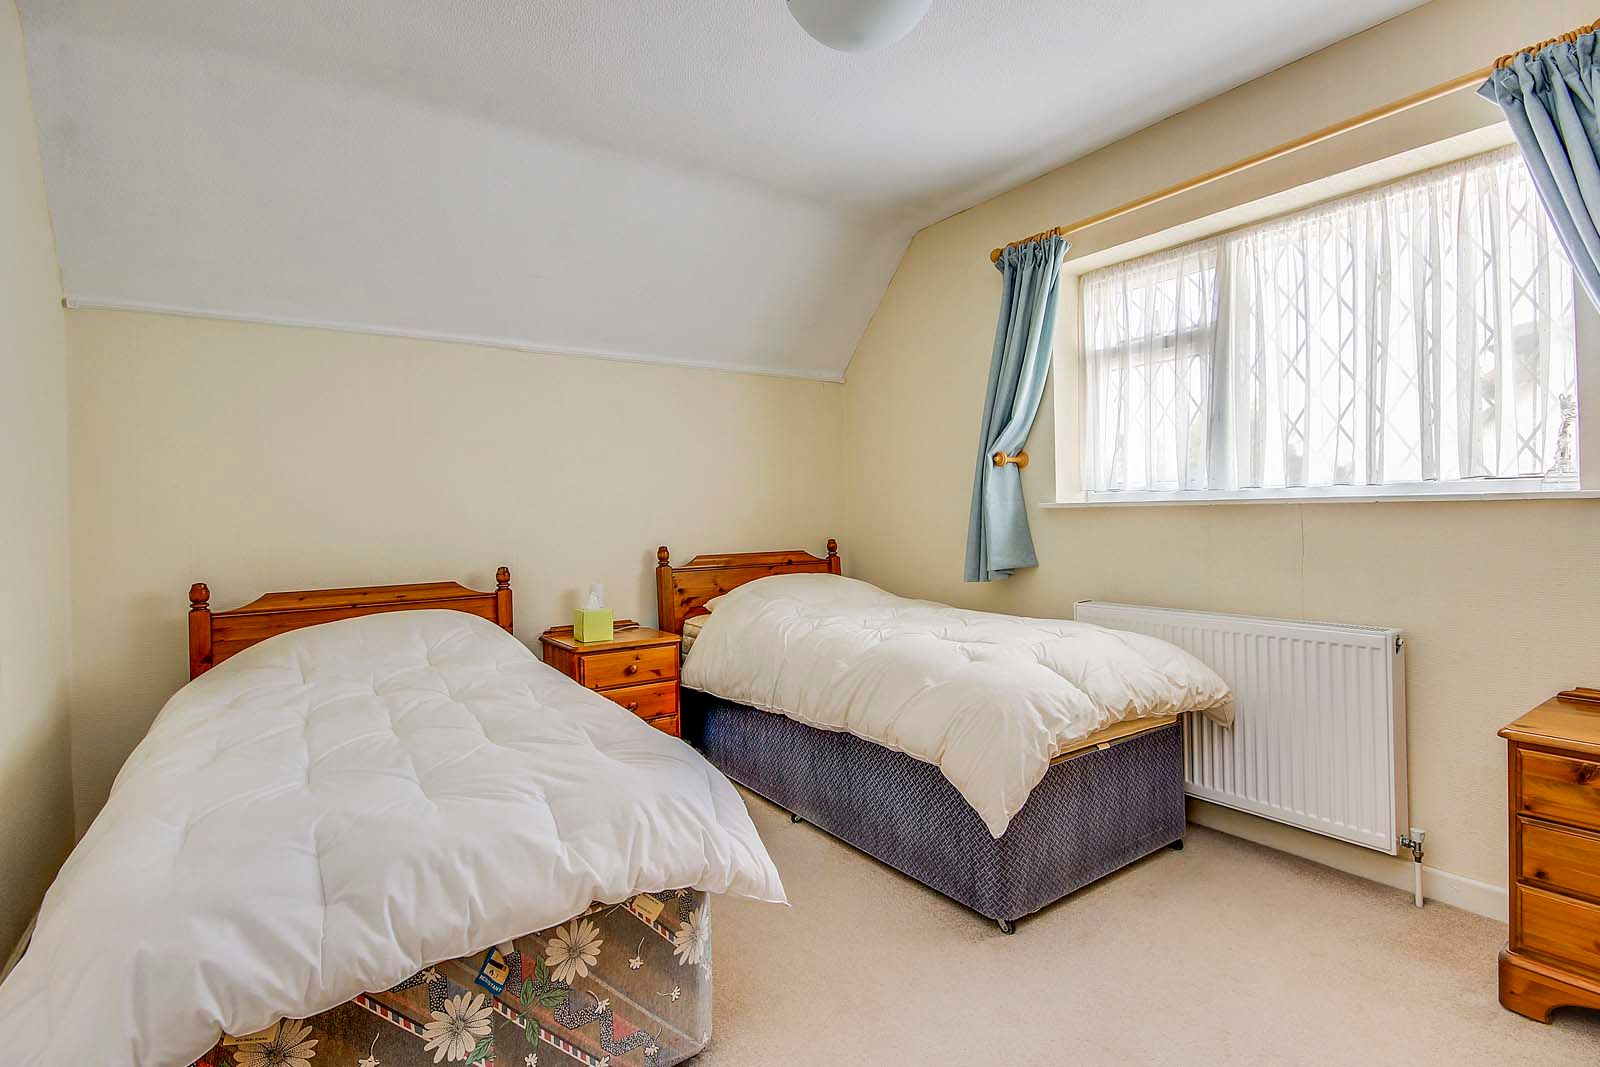 3 bed House for sale in Rustington - Bedroom (Property Image 5)